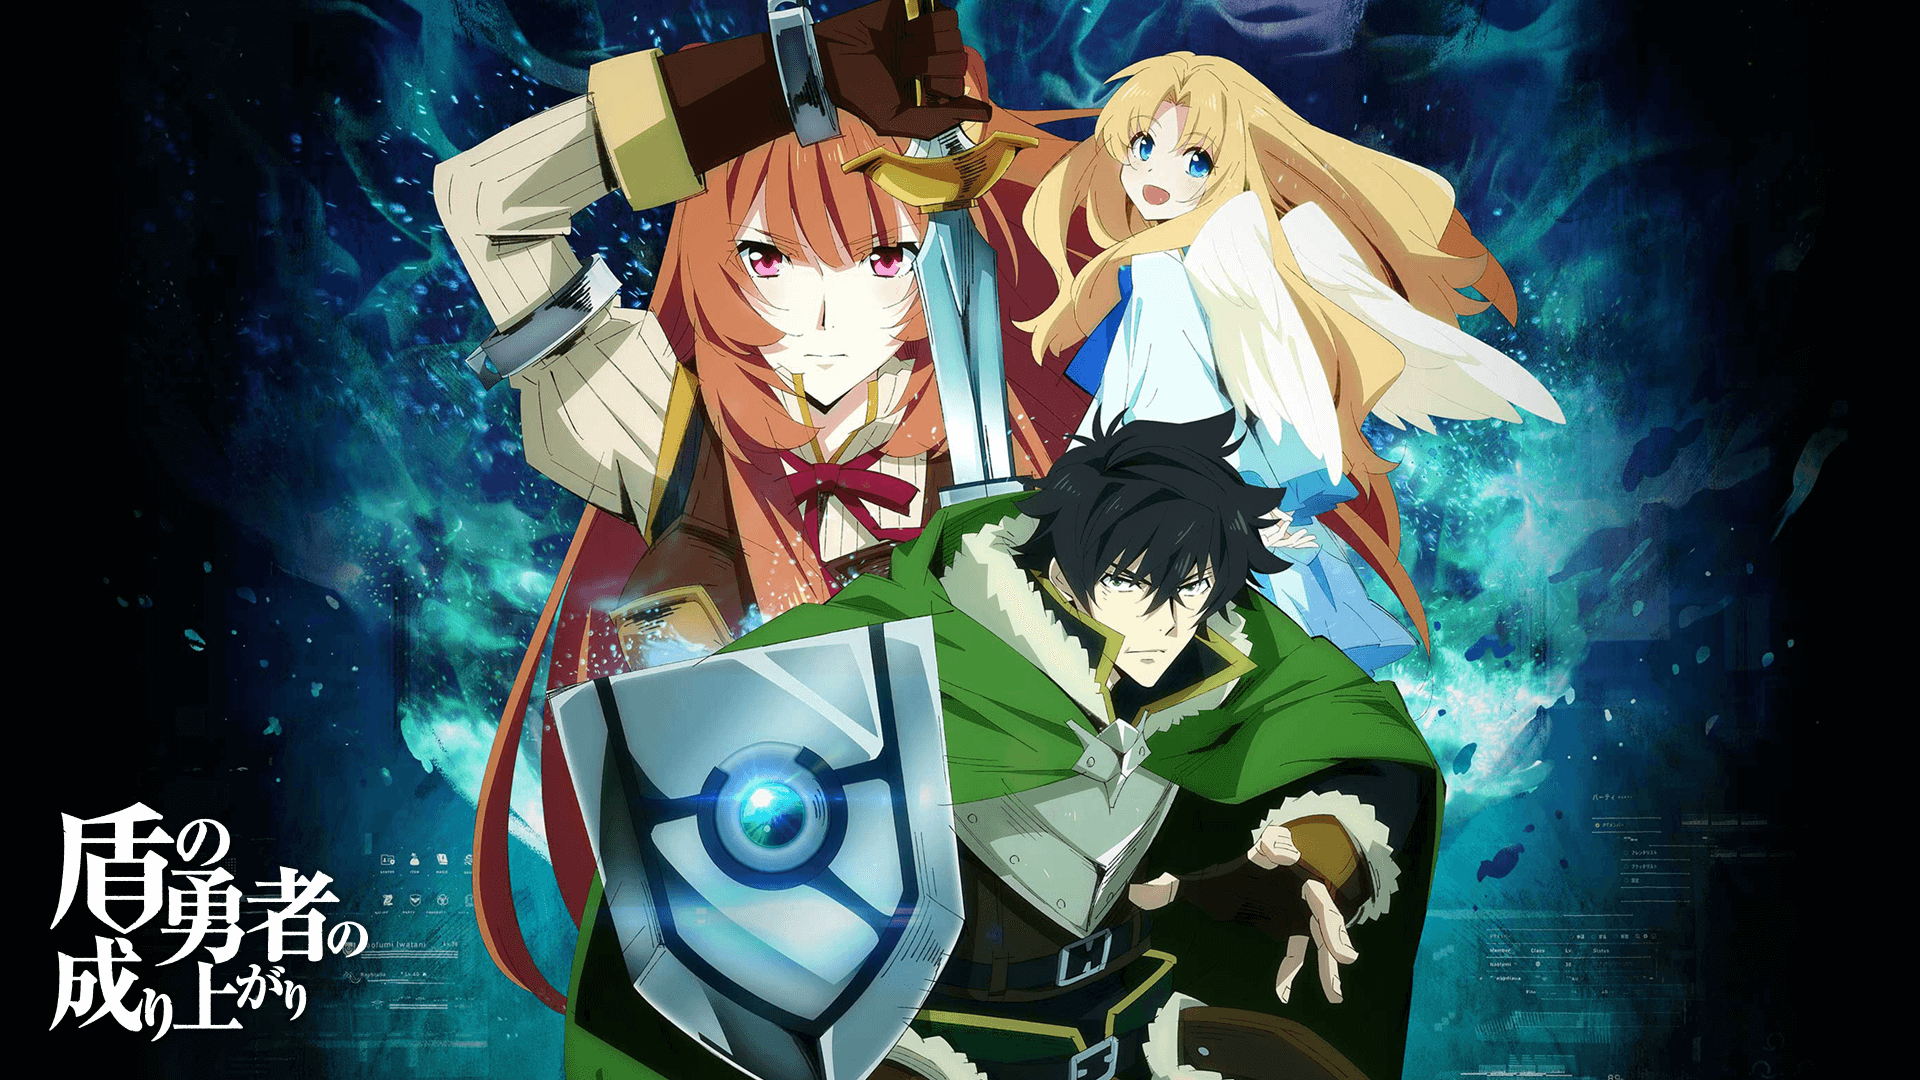 Isekai Anime like BOFURI: I Don't Want to Get Hurt, so I'll Max Out My Defense, with main character with powerful defense, The Rising Of The Shield Hero